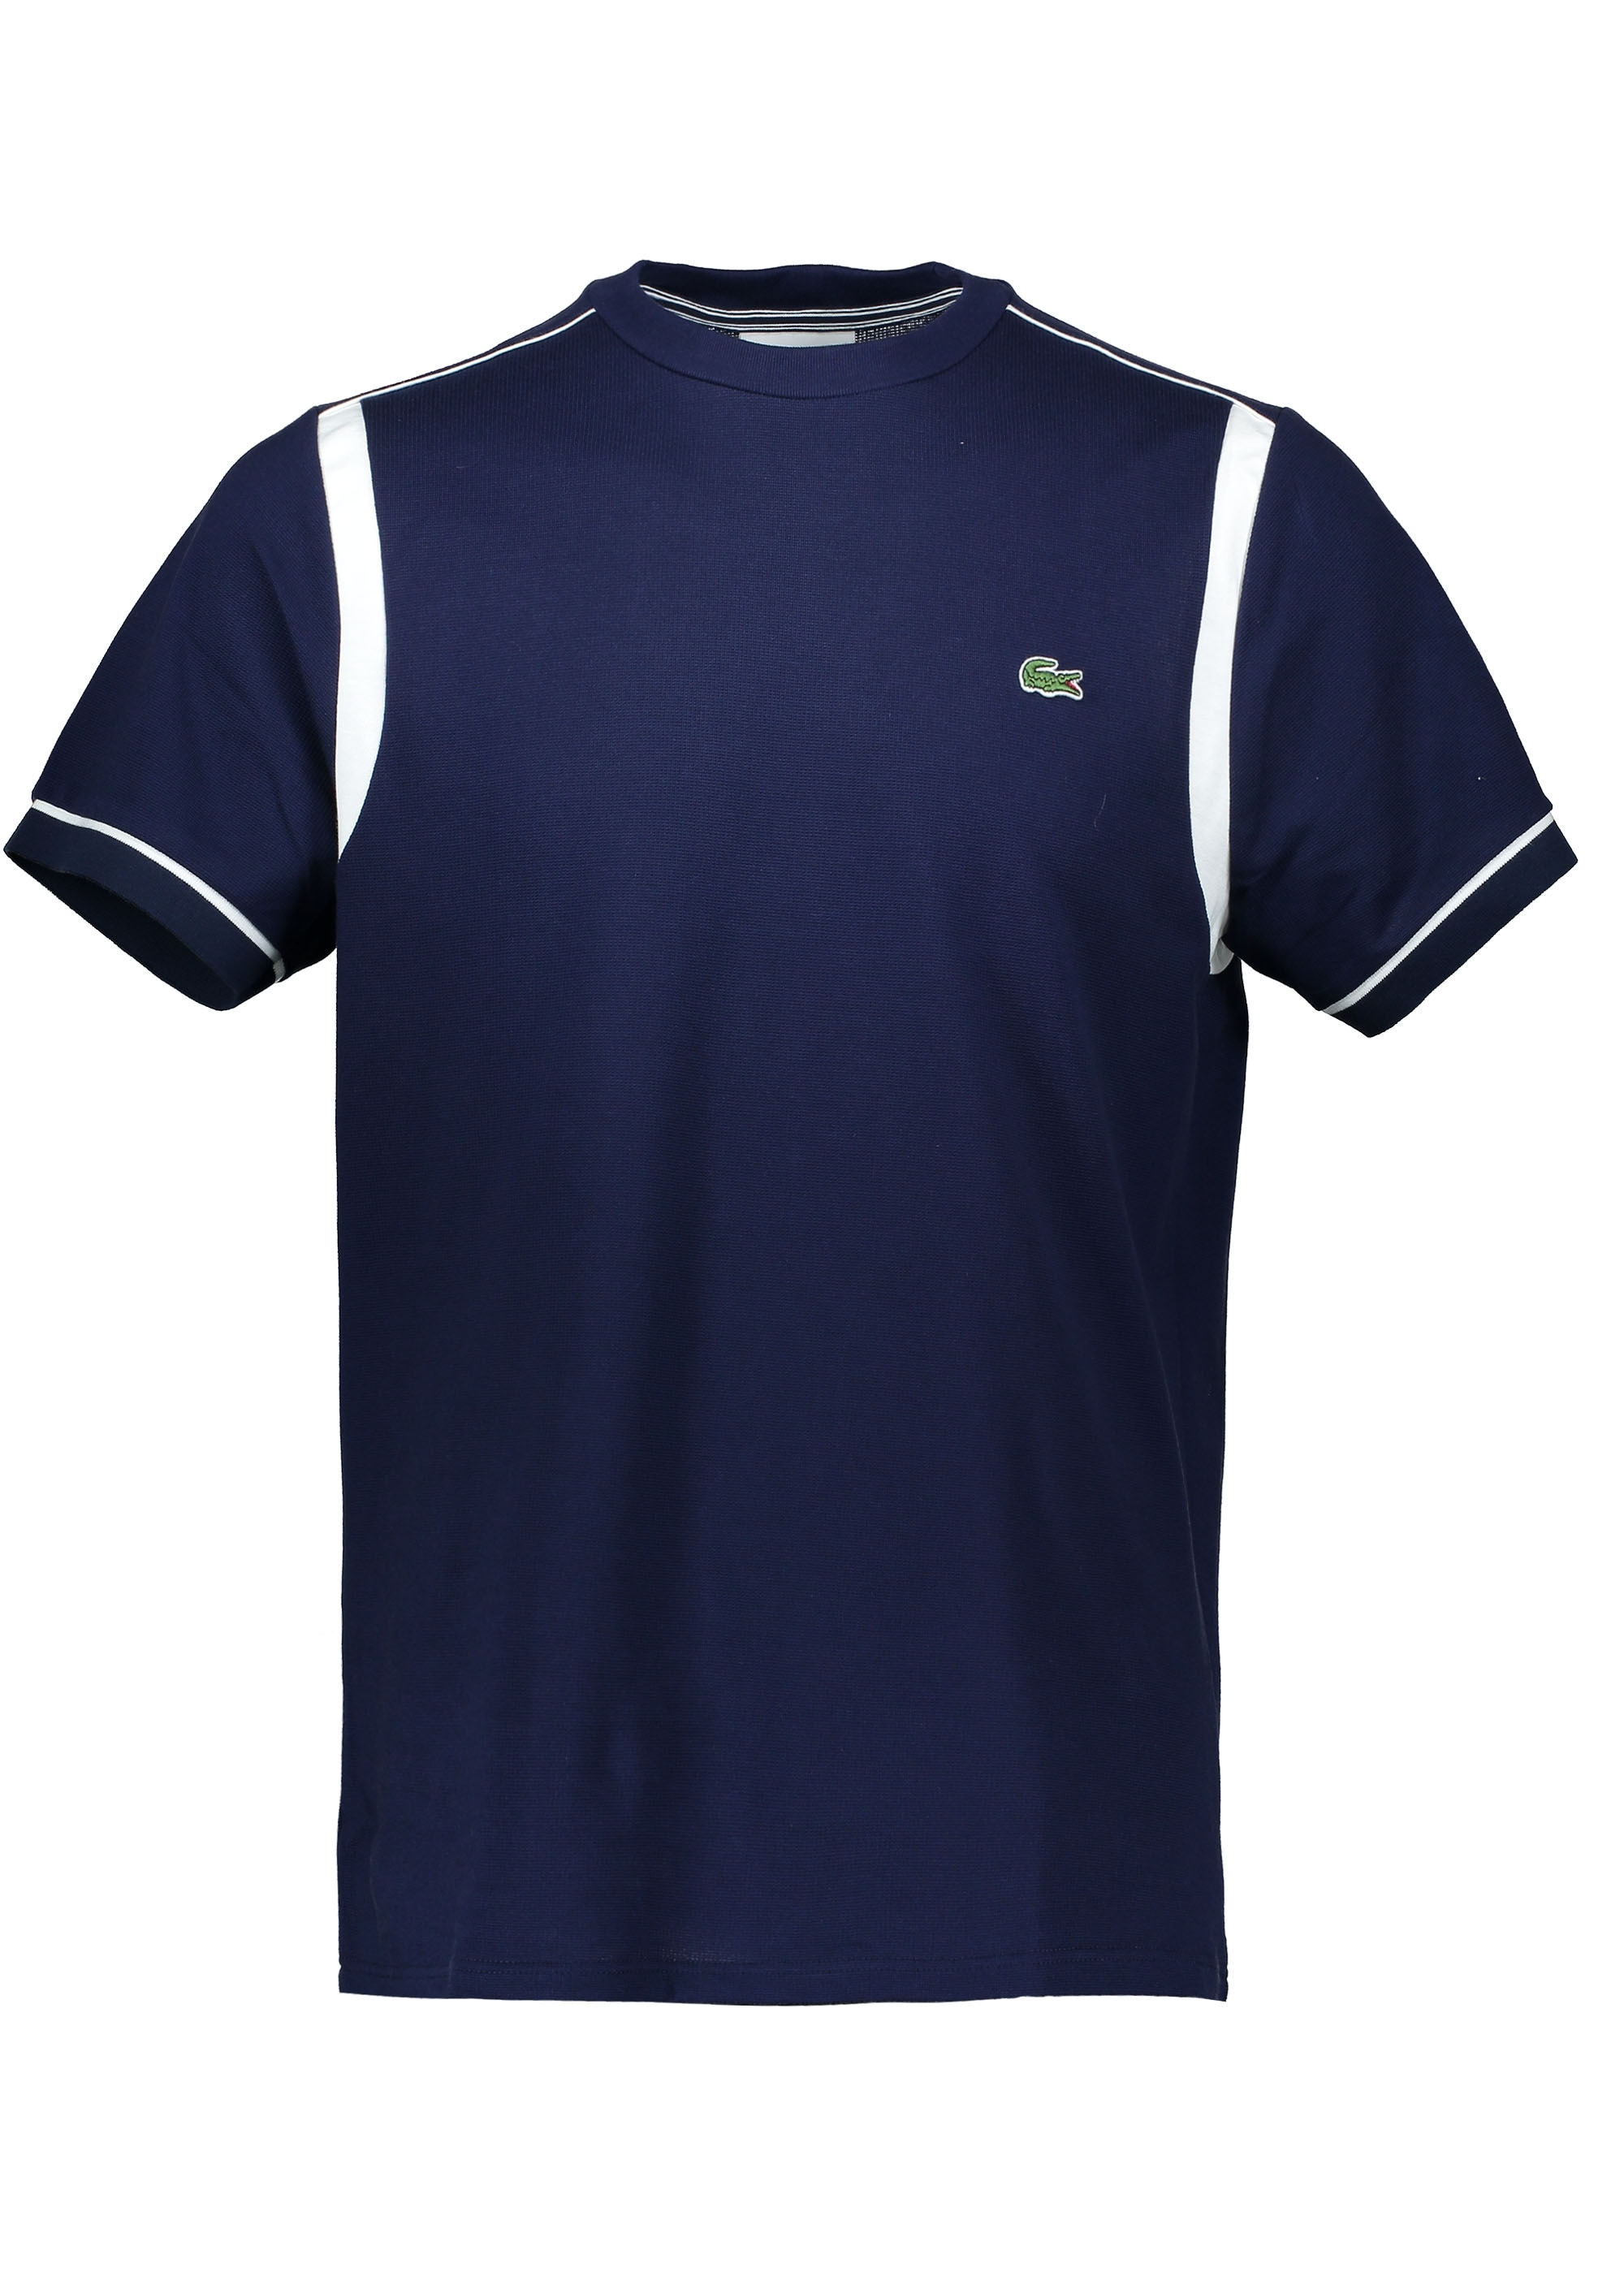 7d497bc6 Lacoste Trim T-Shirt - Navy / Flour - Triads Mens from Triads UK